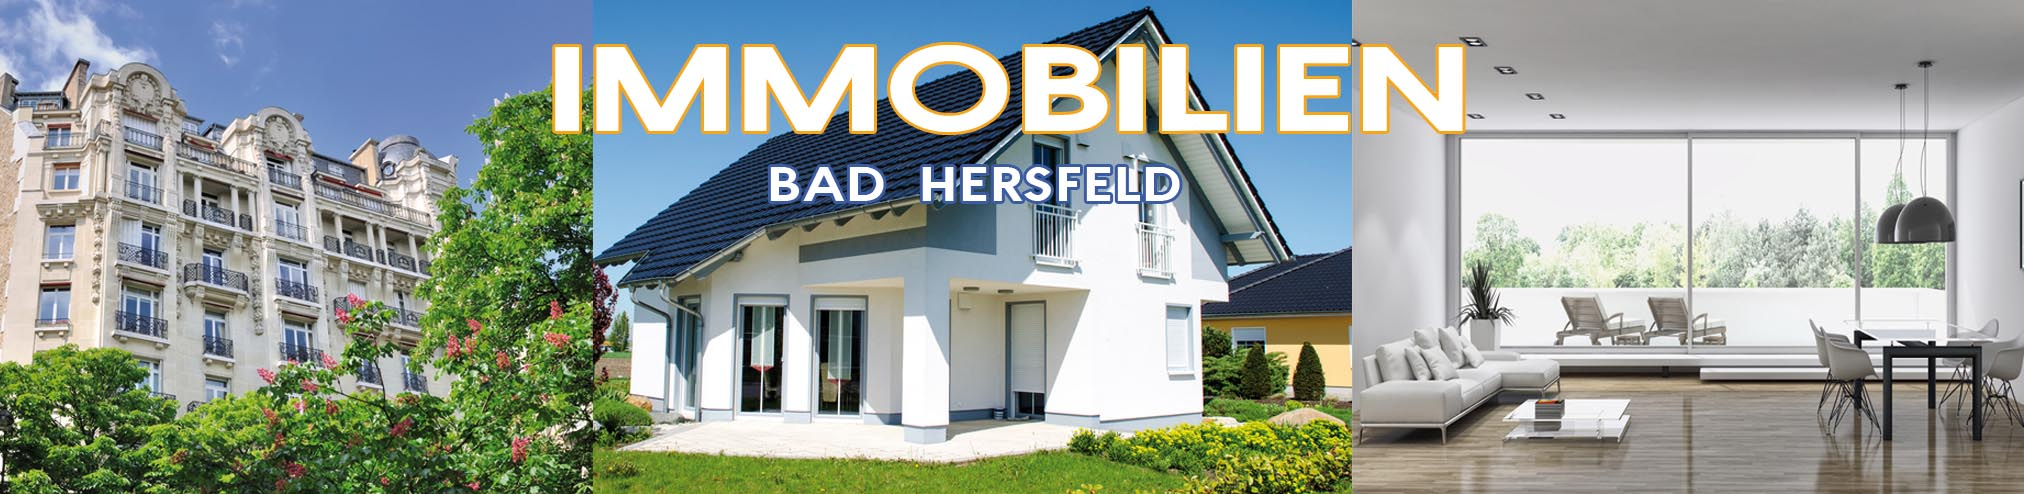 Immobilien Bad Hersfeld